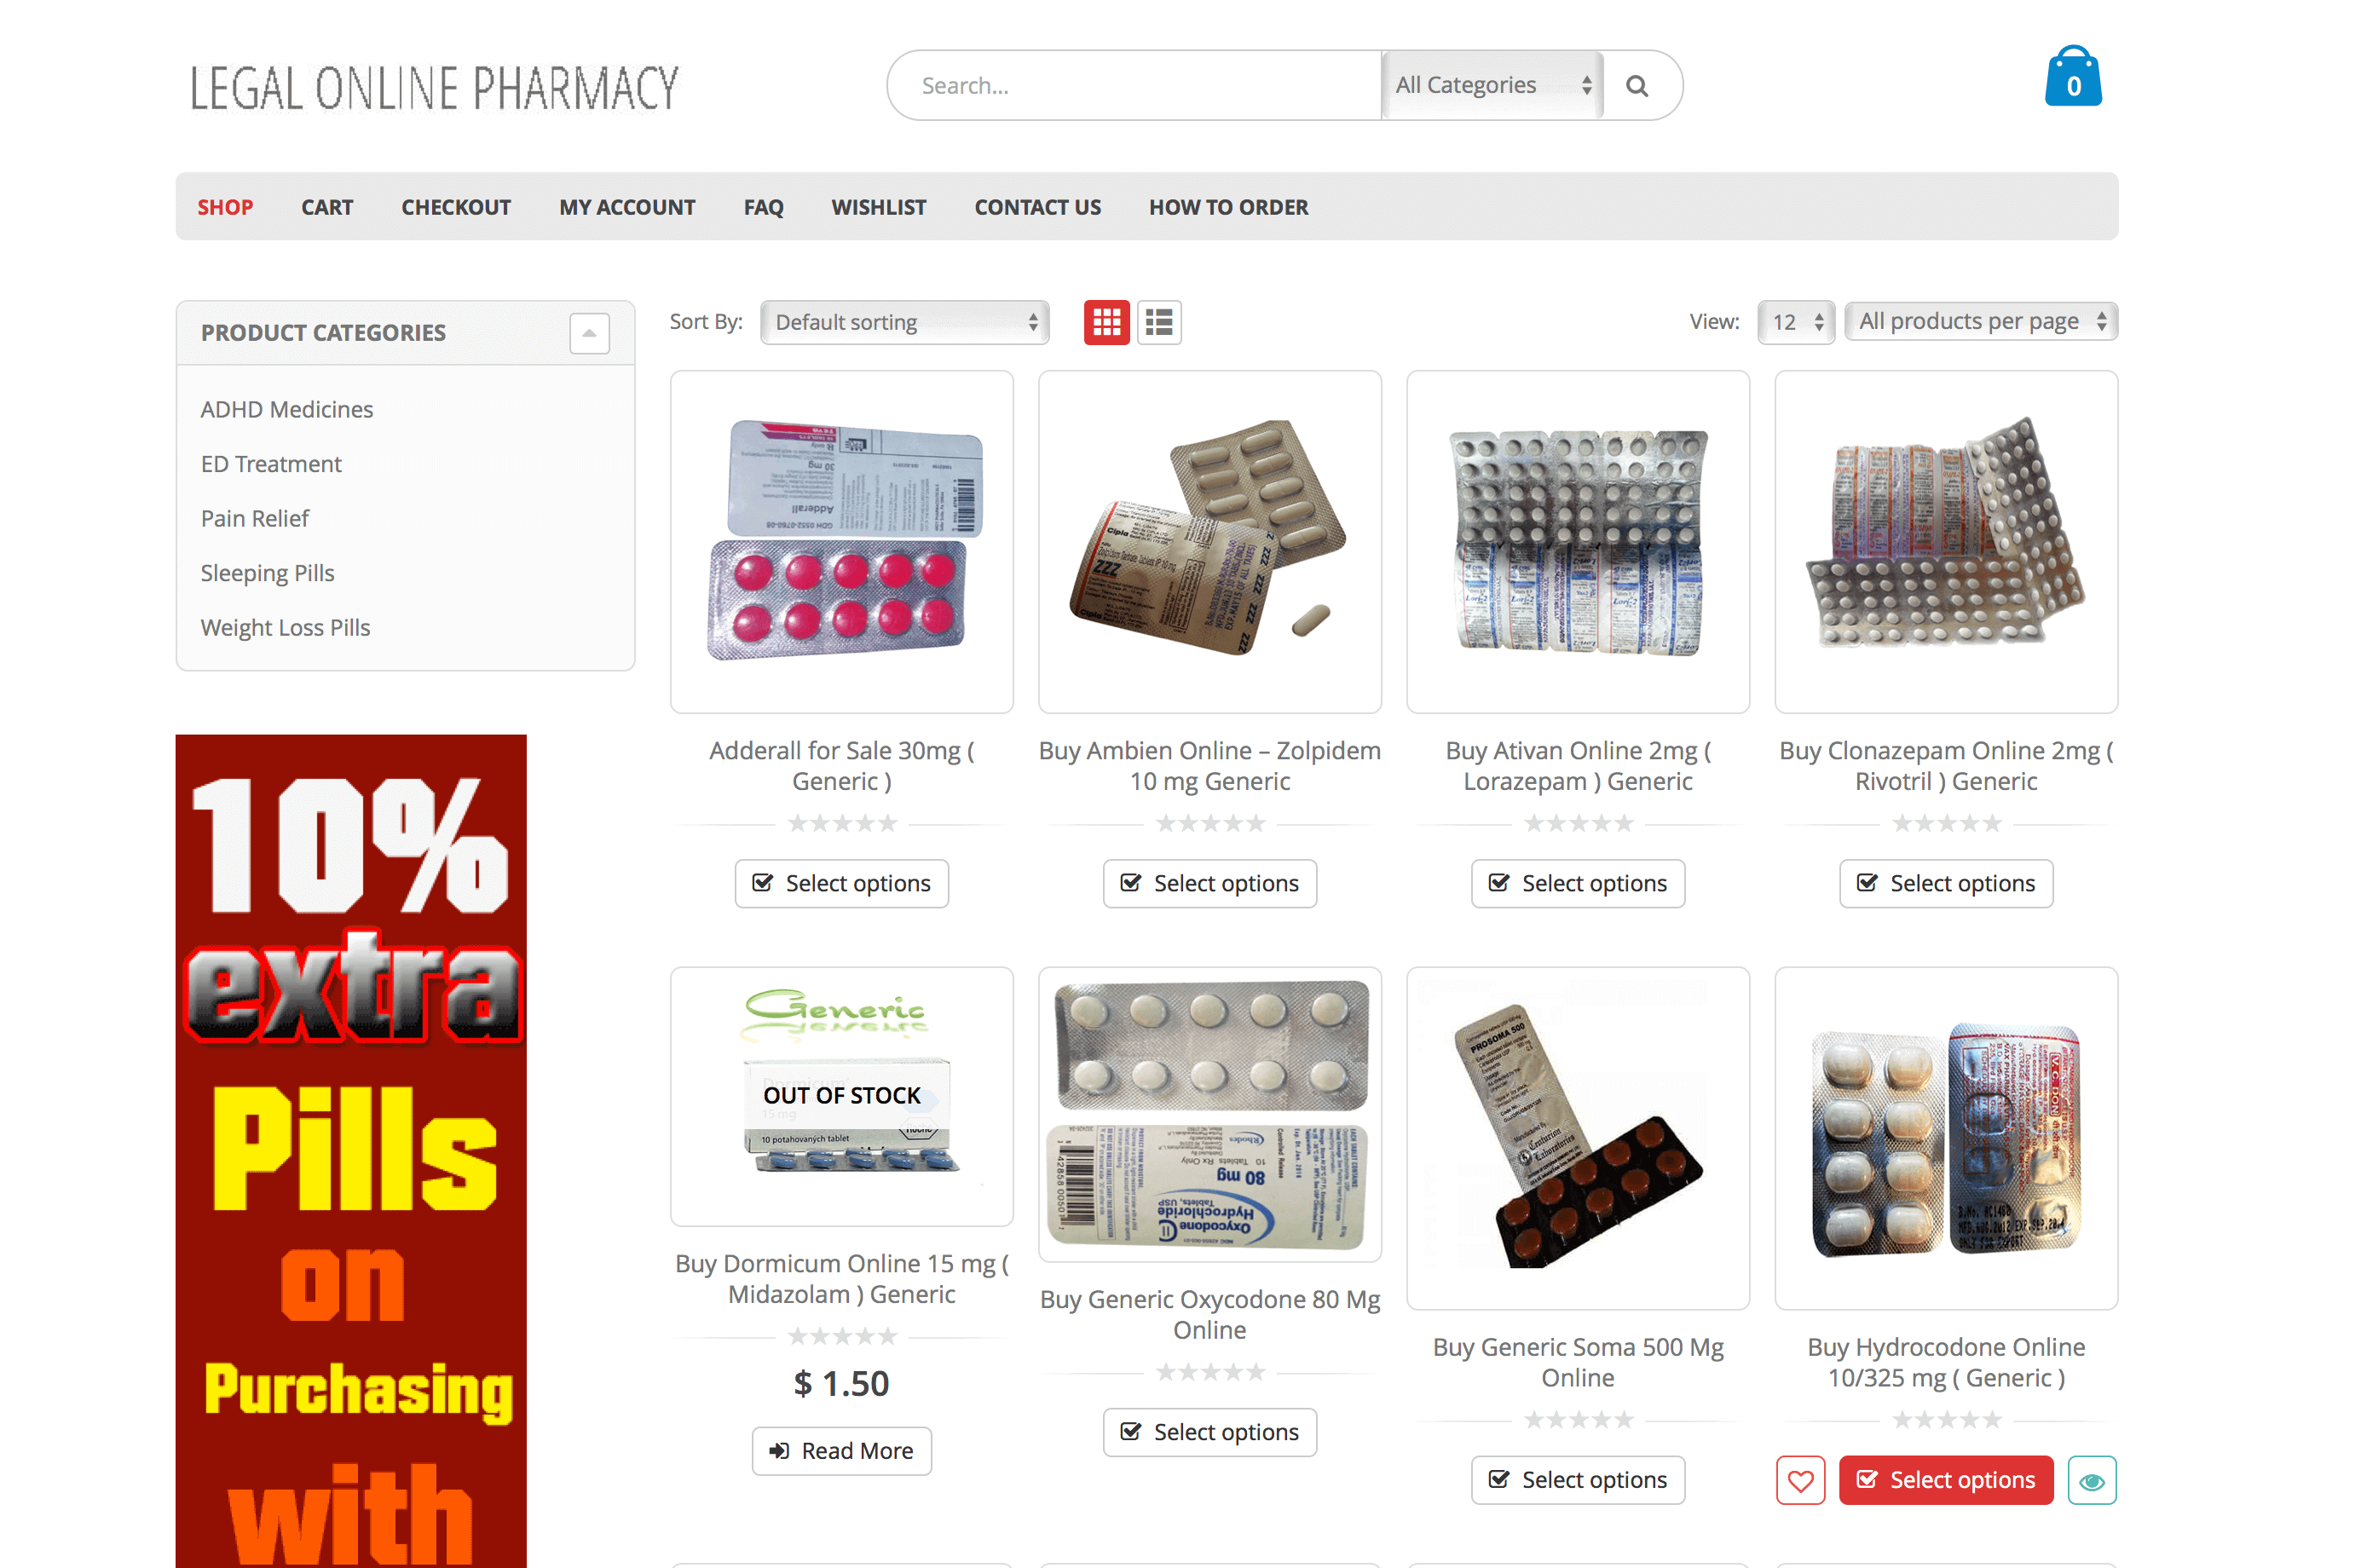 LegalOnlinePharmacy.com Pharmacy Review